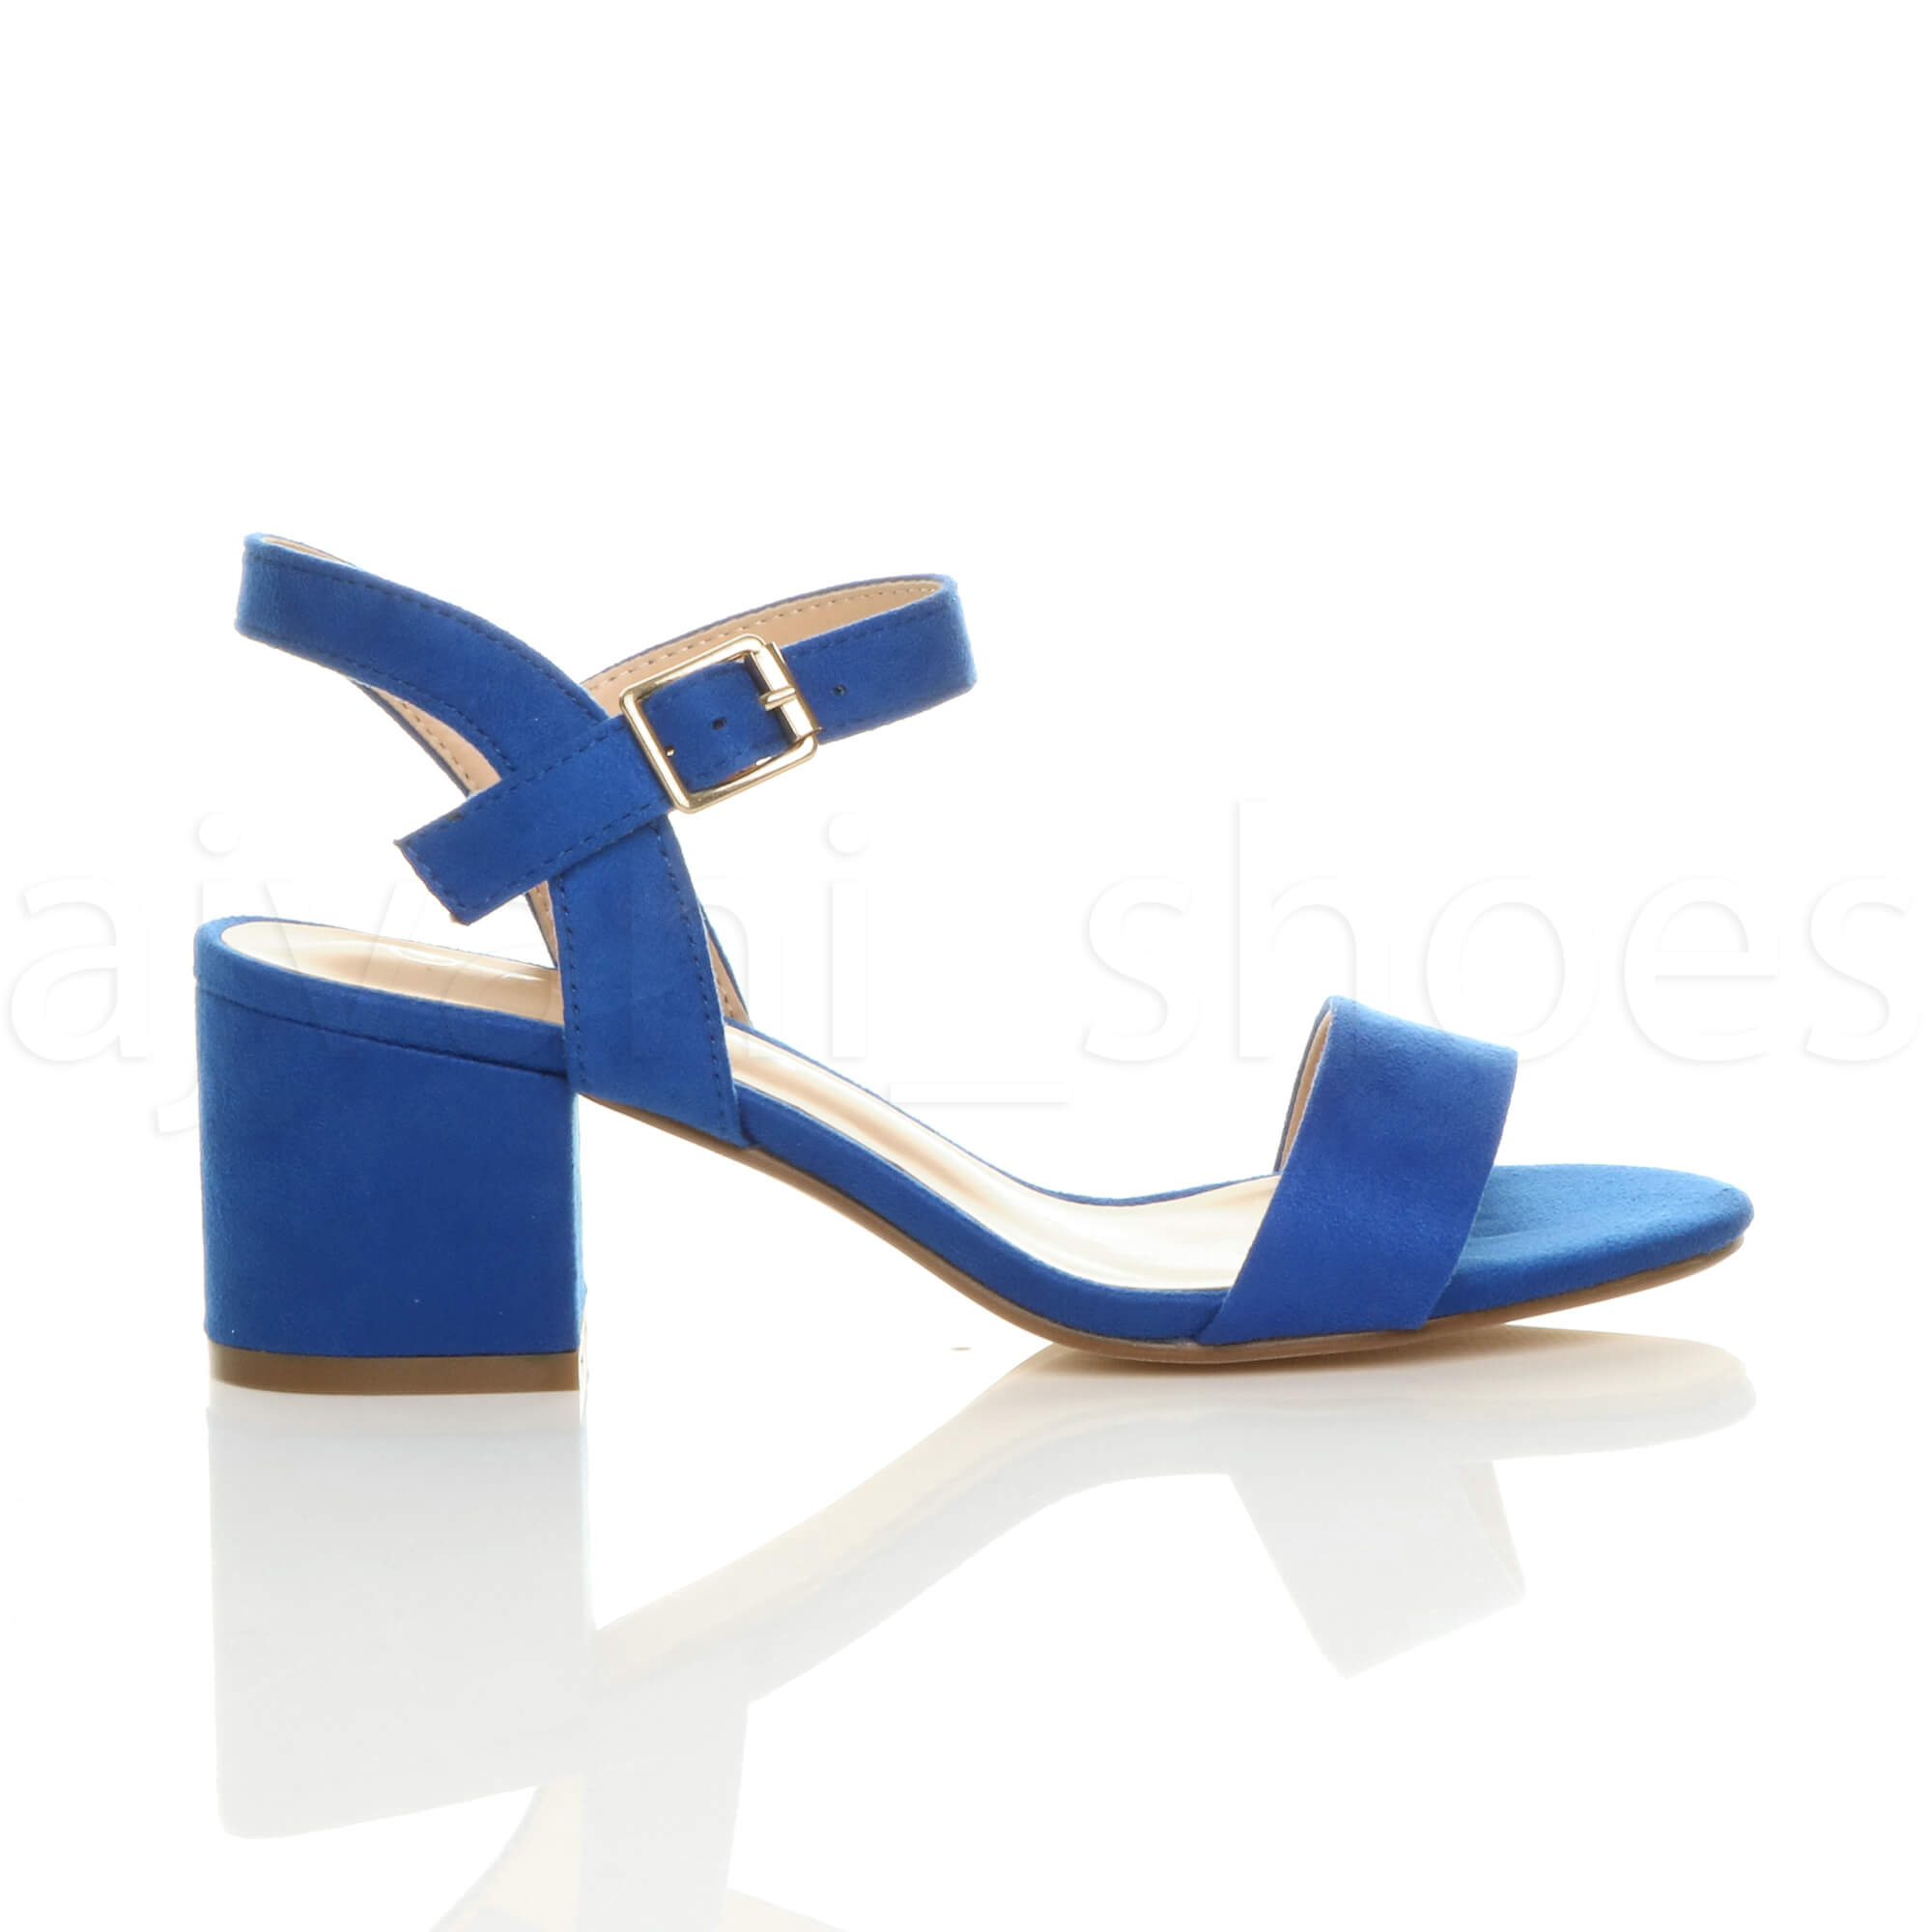 WOMENS-LADIES-MID-LOW-BLOCK-HEEL-PEEP-TOE-ANKLE-STRAP-STRAPPY-PARTY-SANDALS-SIZE thumbnail 35